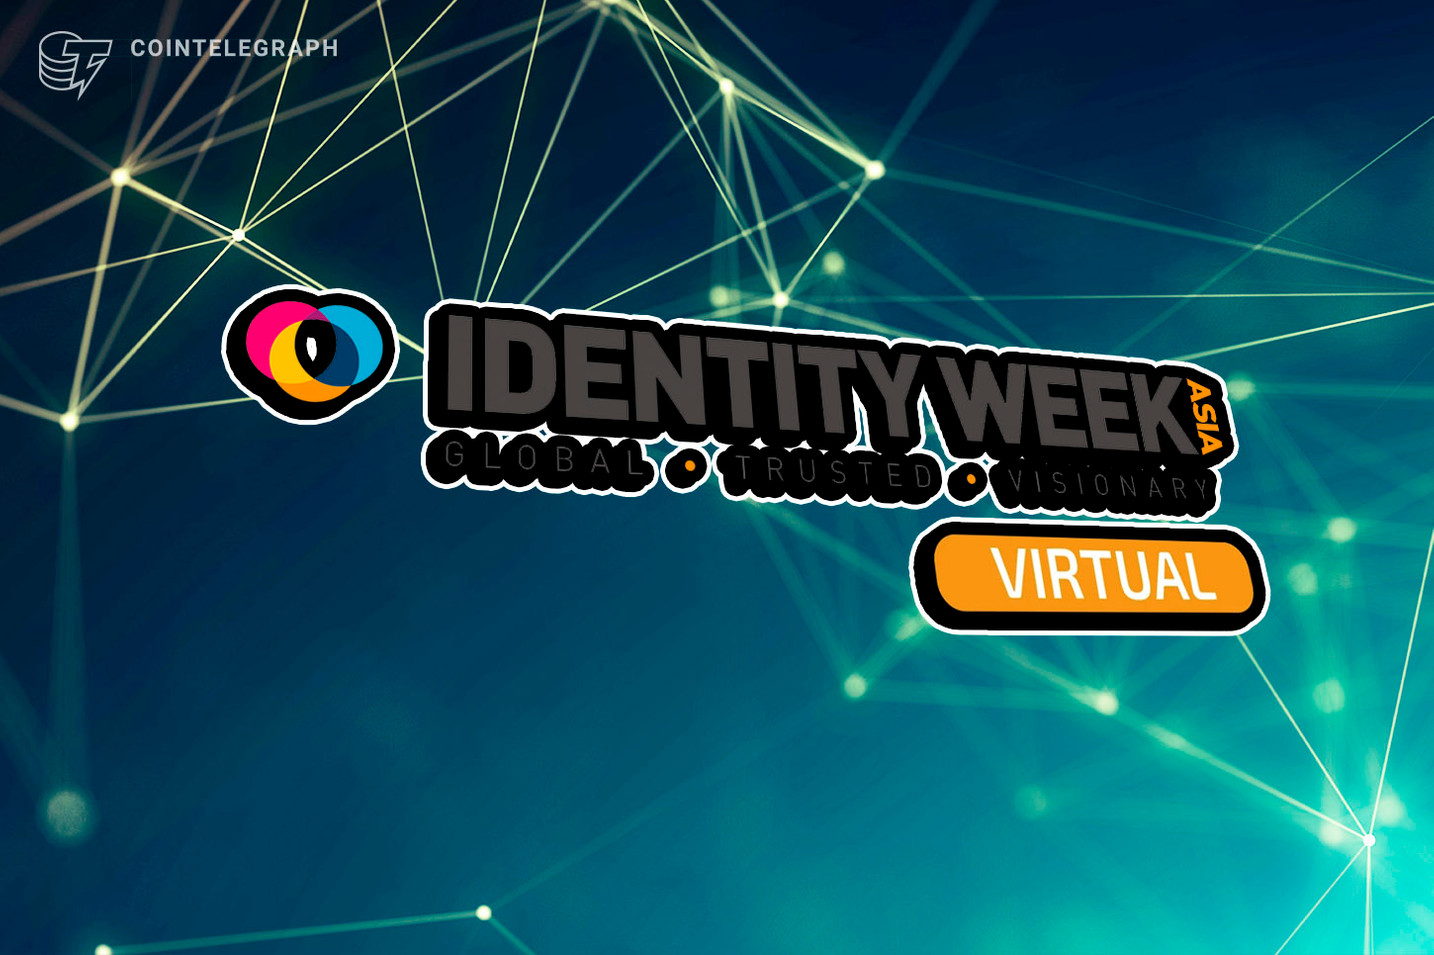 Identity Week Asia to bring identity industry together from 14 October